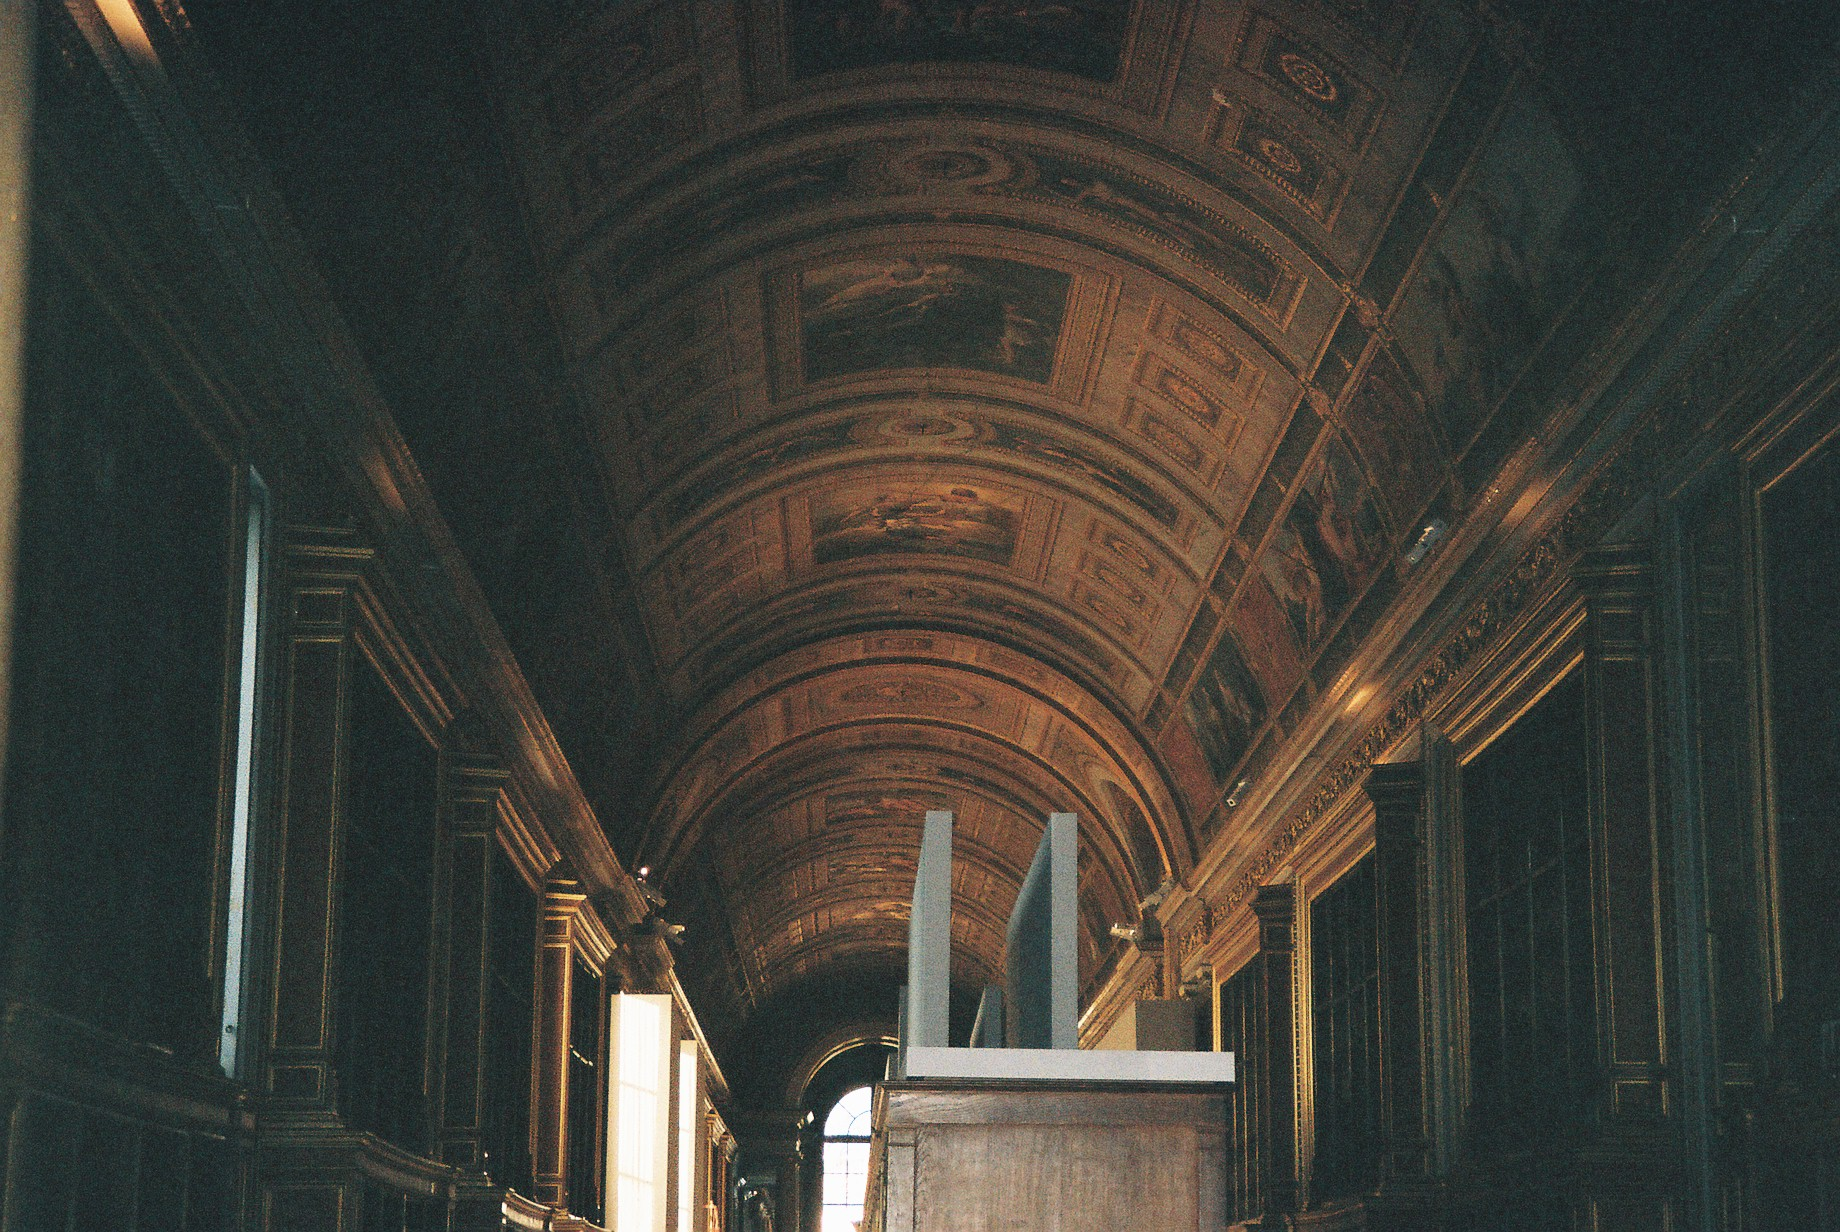 fontainebleau-royal-library-at-chateau-1207